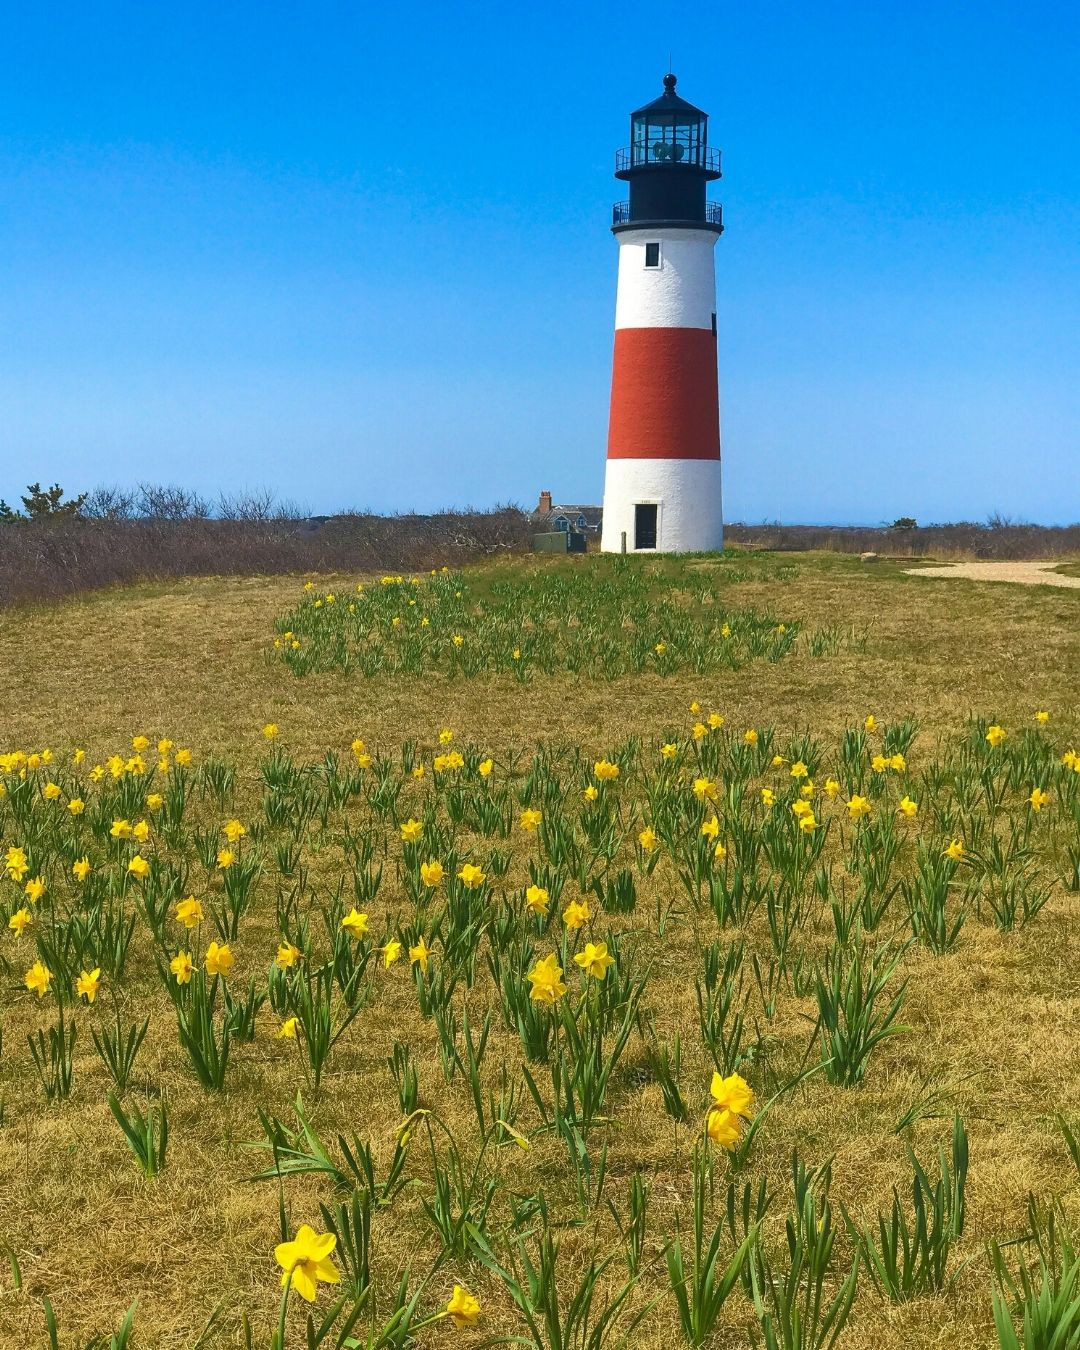 The Nantucket Hotel and Resort is a great choice when looking for places to stay on the island of Nantucket, MA